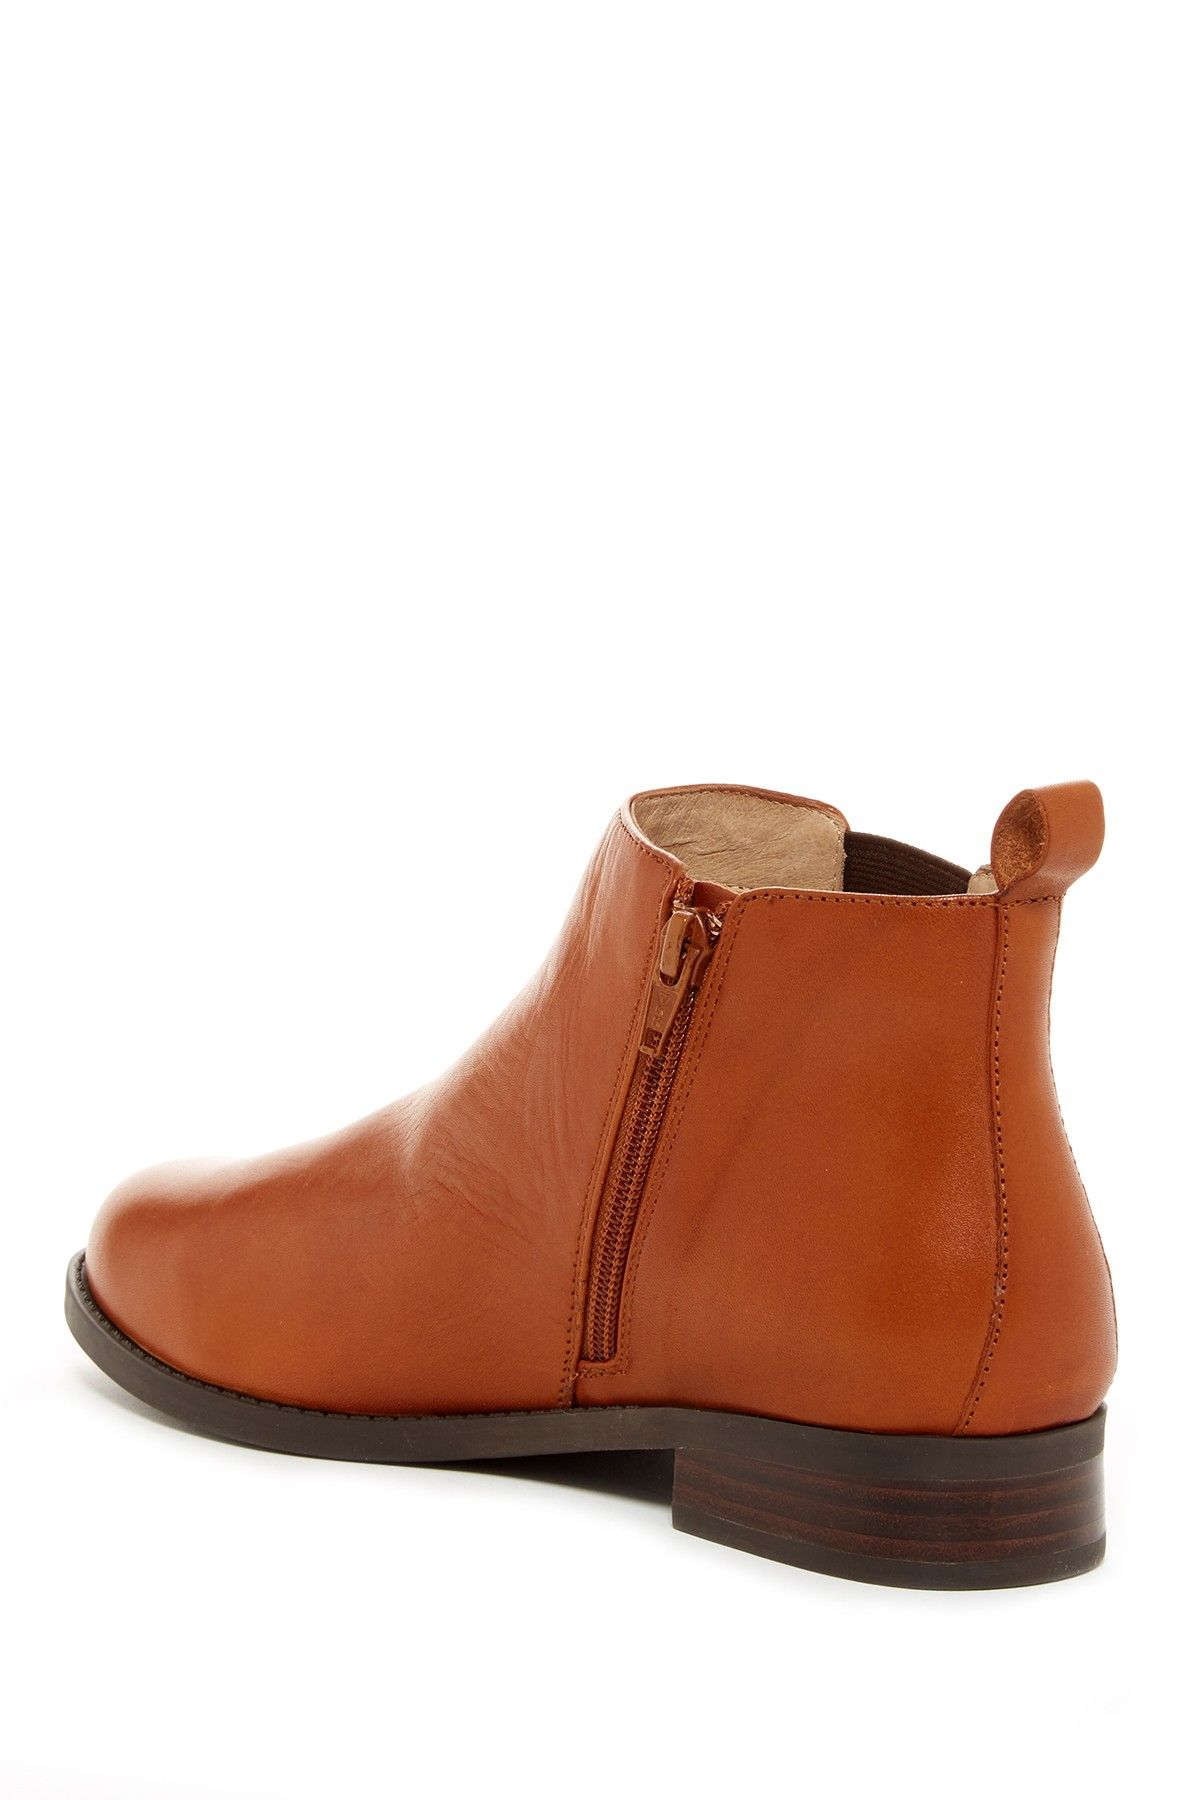 da2ef5f73f9 Vionic - Country Nadelle Ankle Boot at Nordstrom Rack. Free Shipping on  orders over  100.